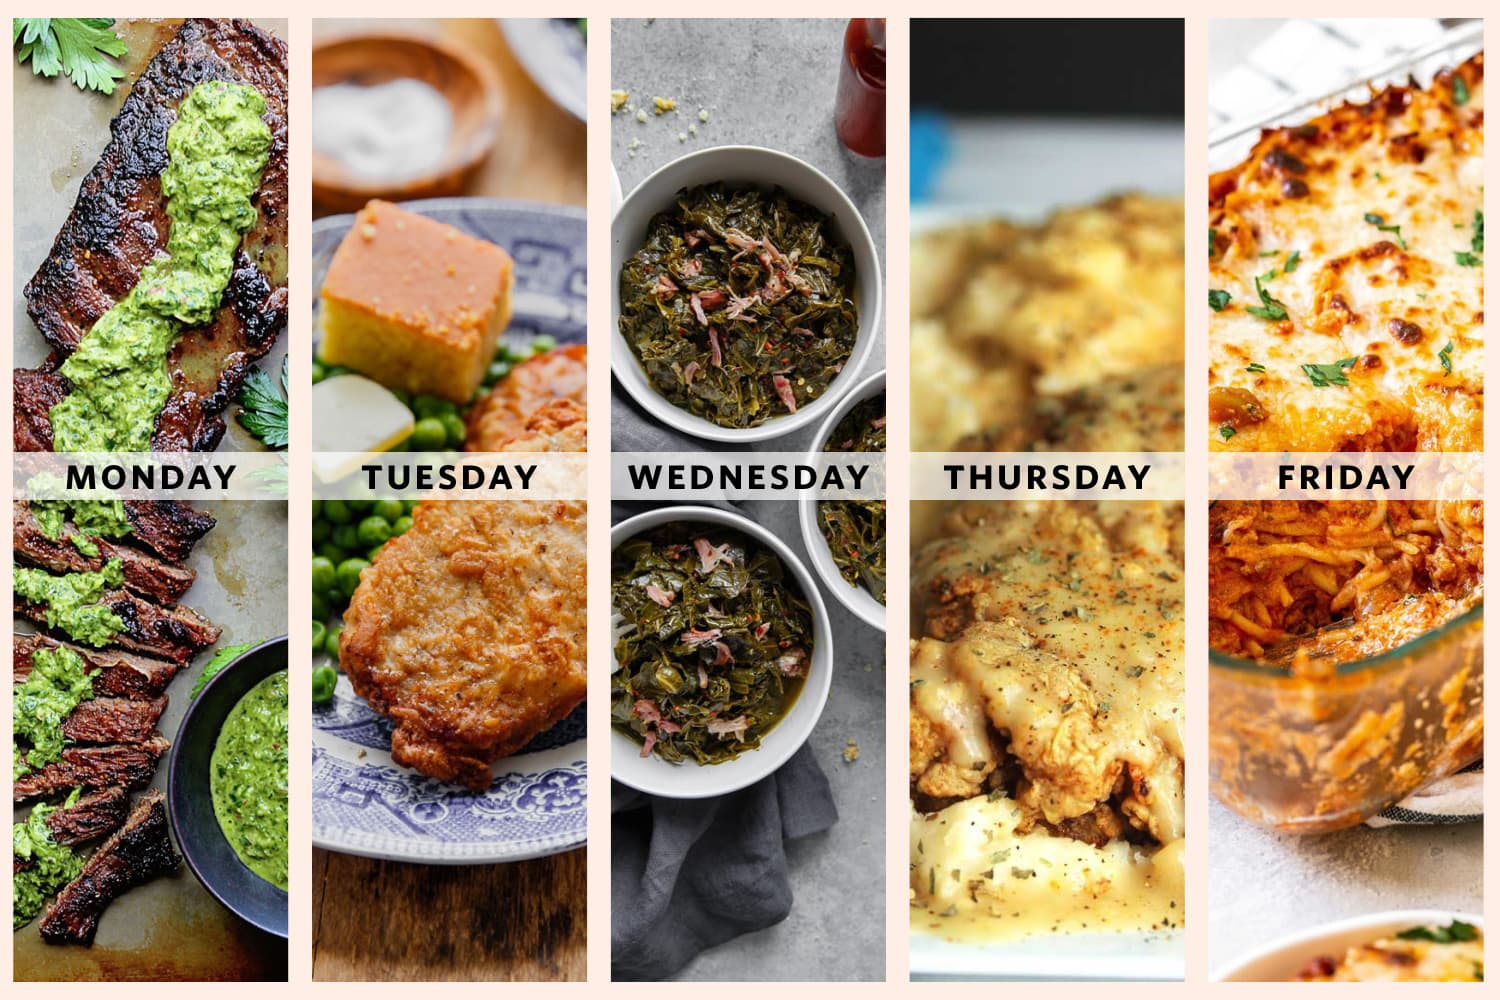 5 Comfort-Inspired Southern Dinners from Jocelyn Delk Adams